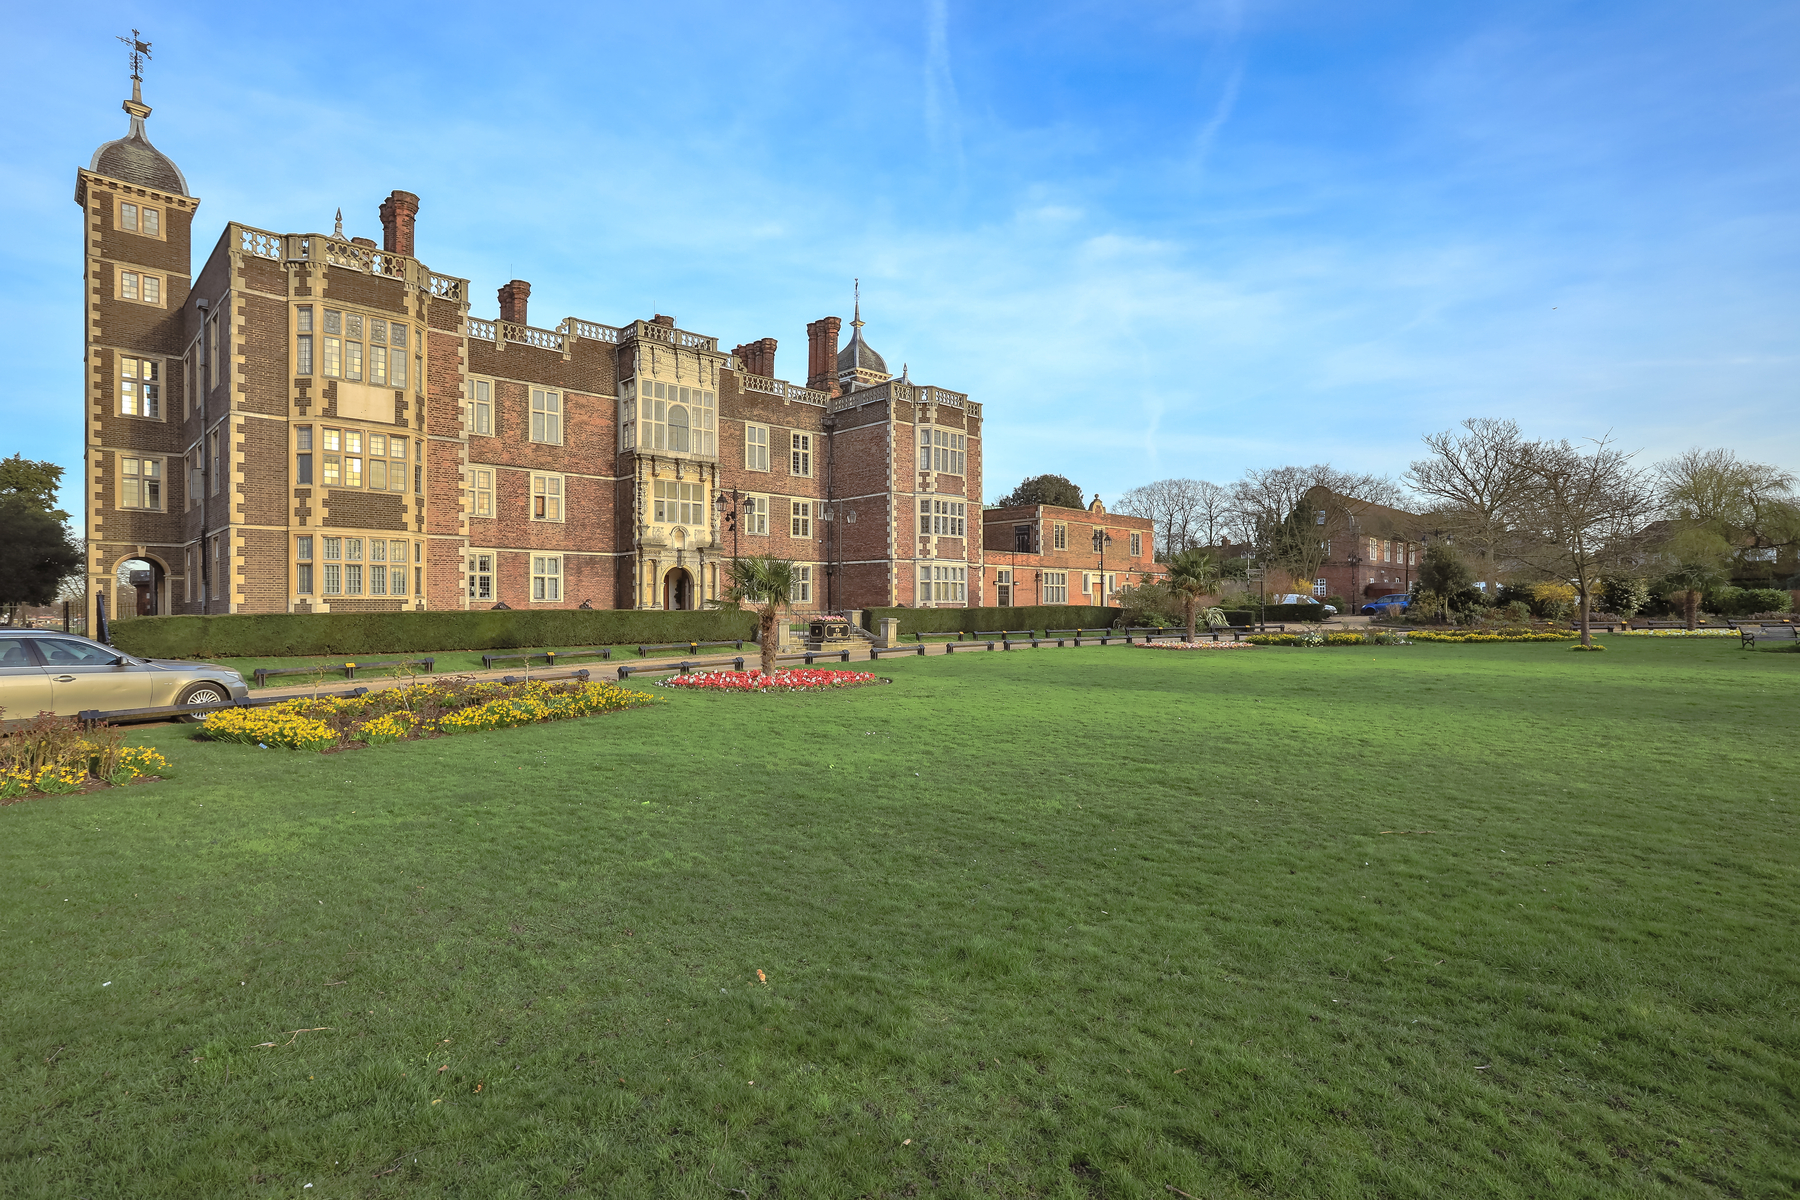 A photograph of Charlton House